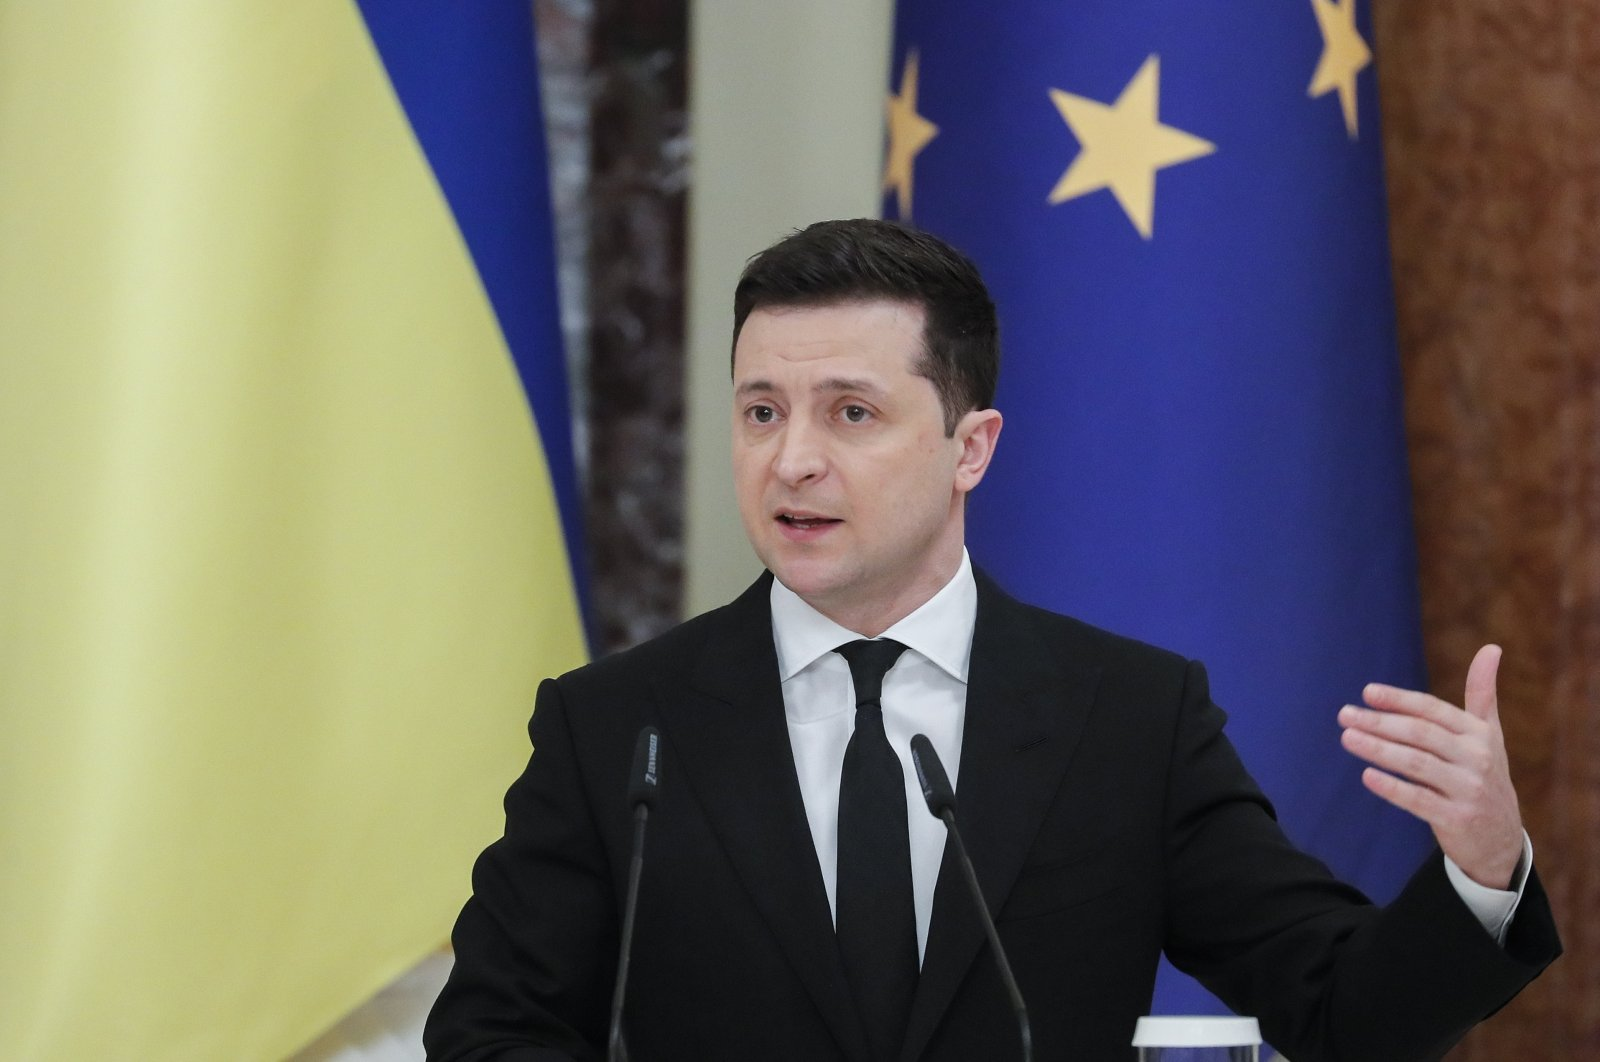 Ukrainian President Volodymyr Zelenskyy speaks during a joint press conference with President of the European Union Council Michel (not pictured) in Kyiv, Ukraine, March 3, 2021. (EPA Photo)